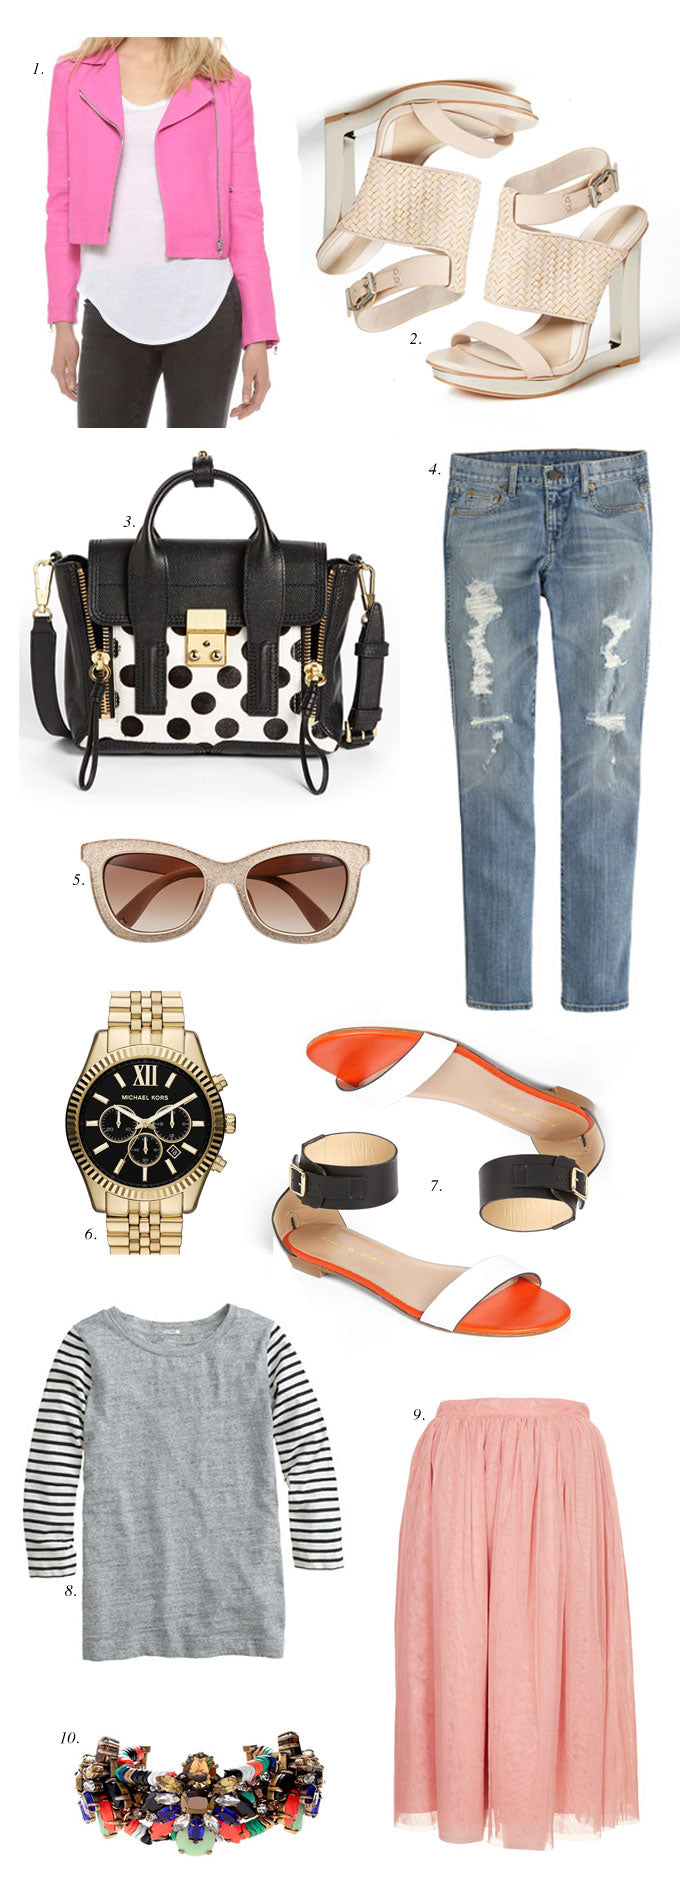 spring-2014-outfit-ideas